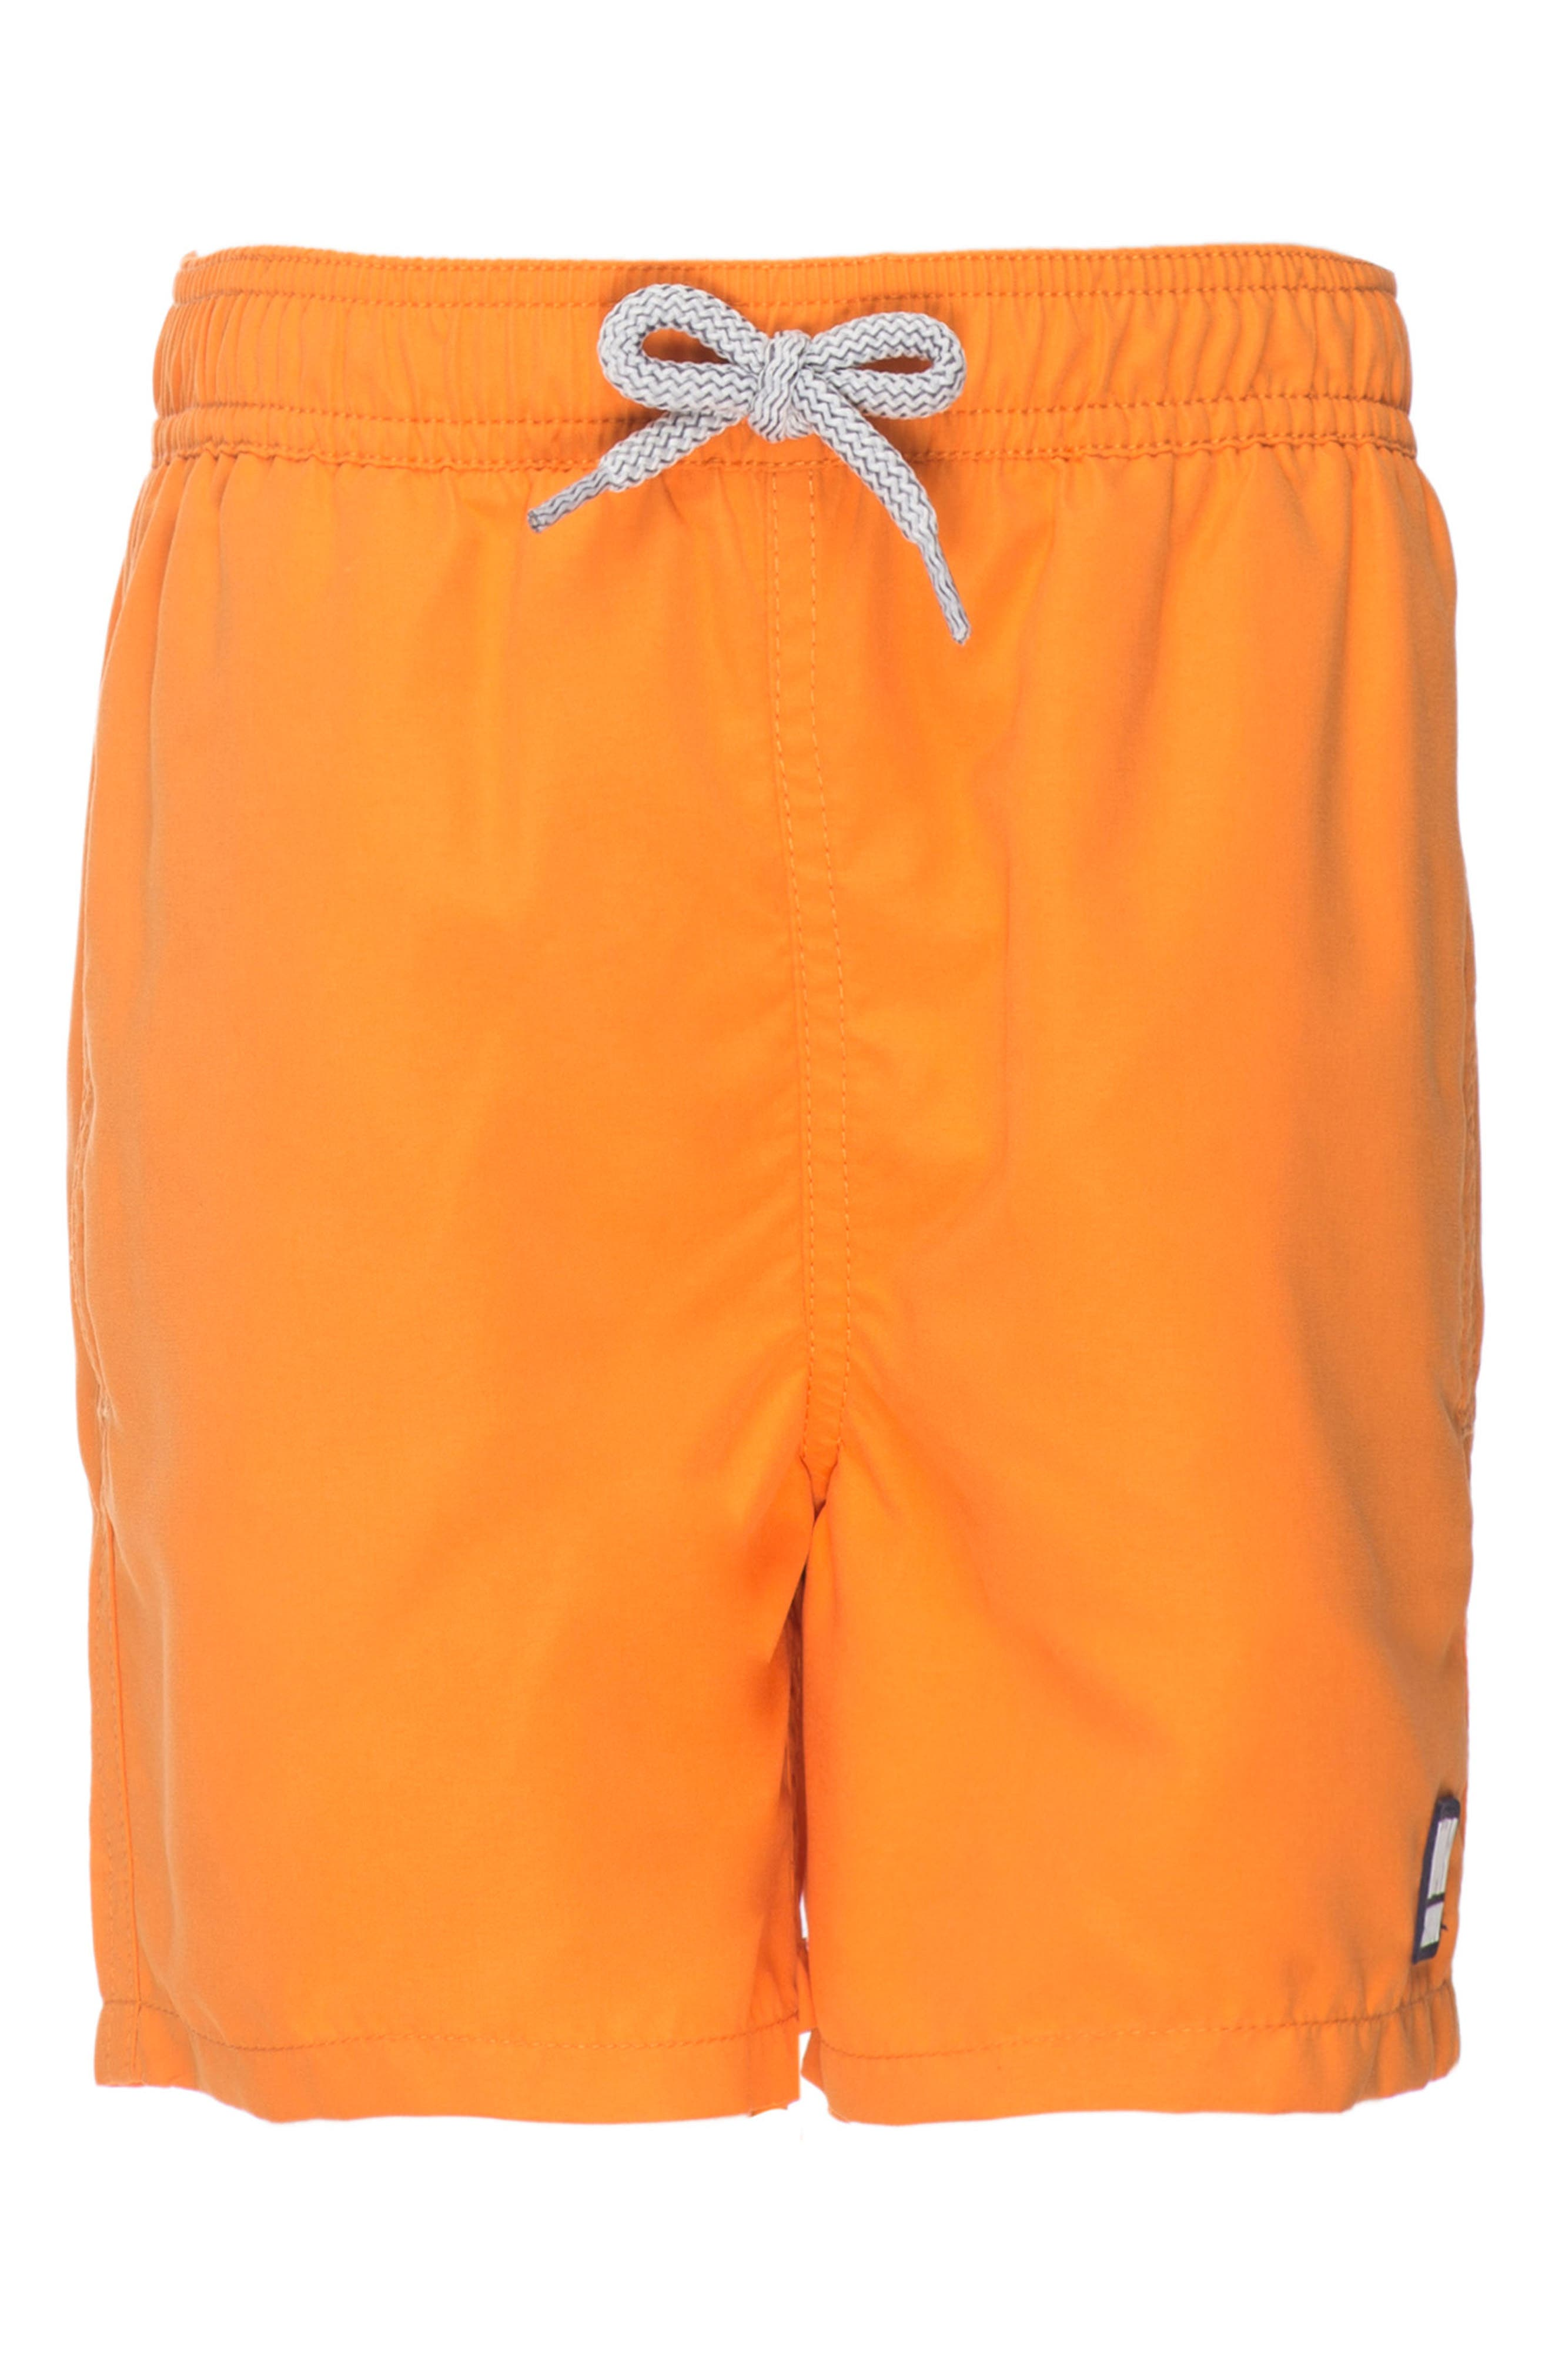 Solid Swim Trunks,                             Alternate thumbnail 3, color,                             BAKED ORANGE